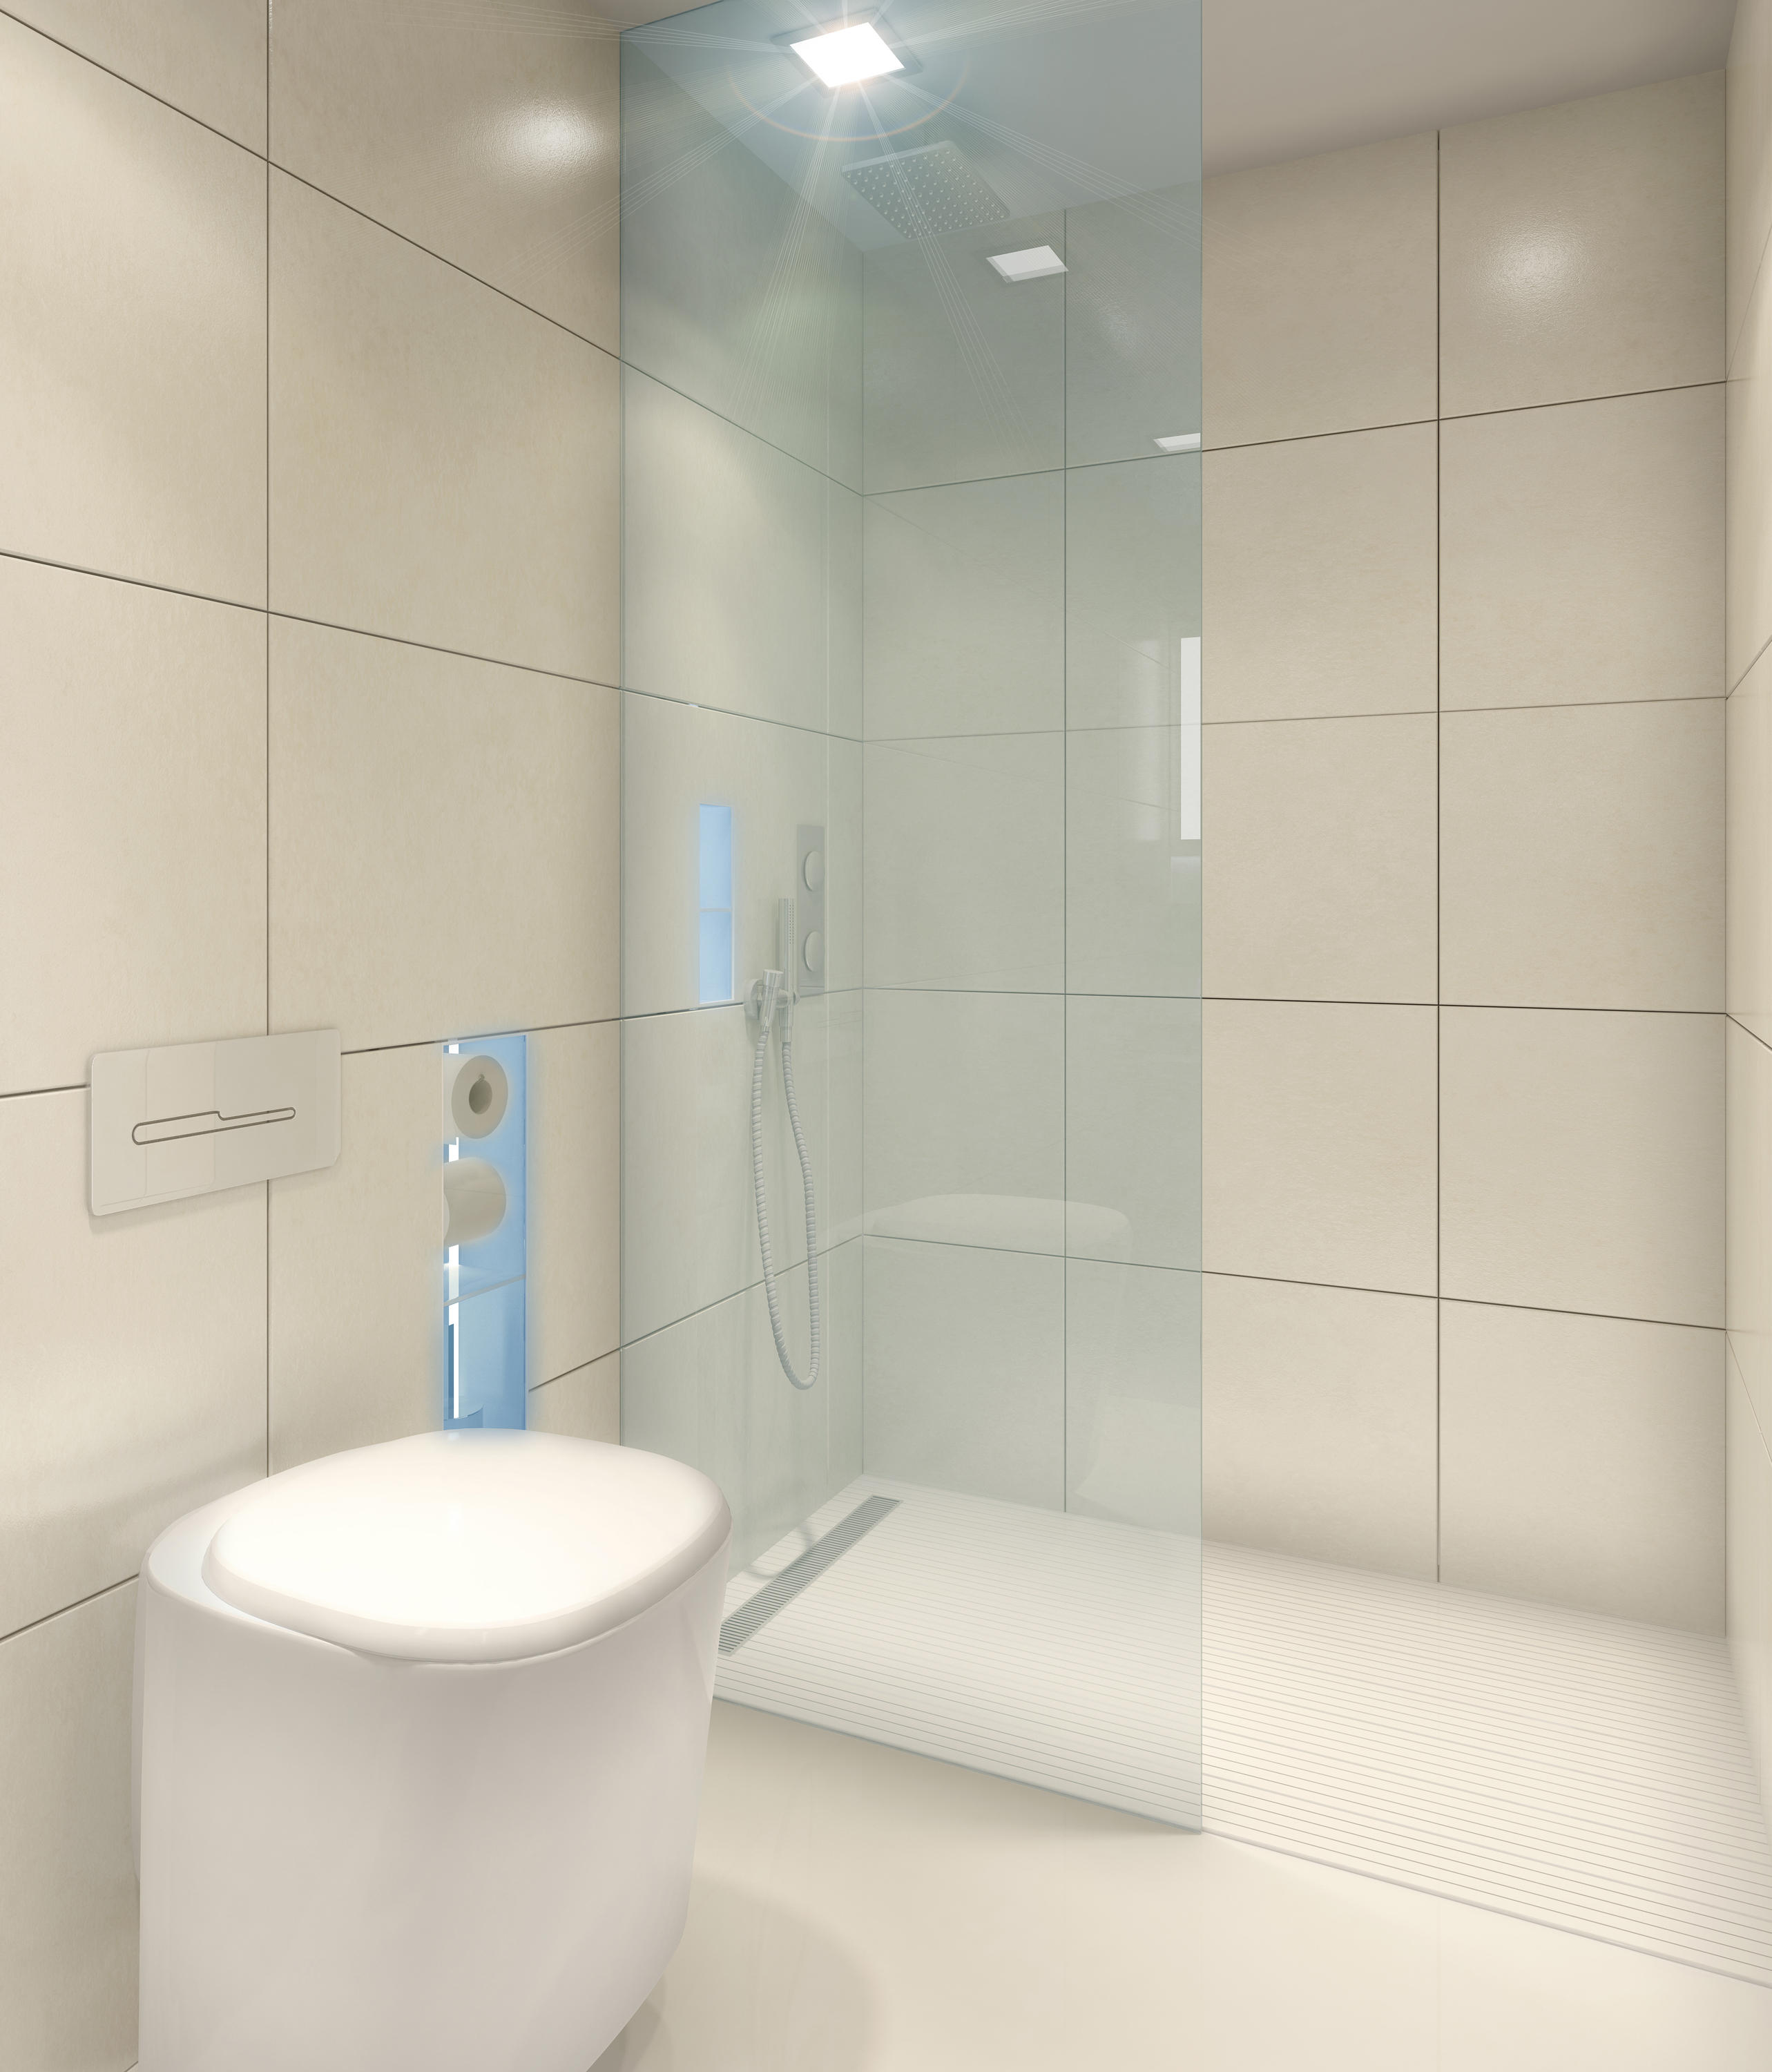 BUILT IN Toilet/shower White By AMOS DESIGN | Shower Screens